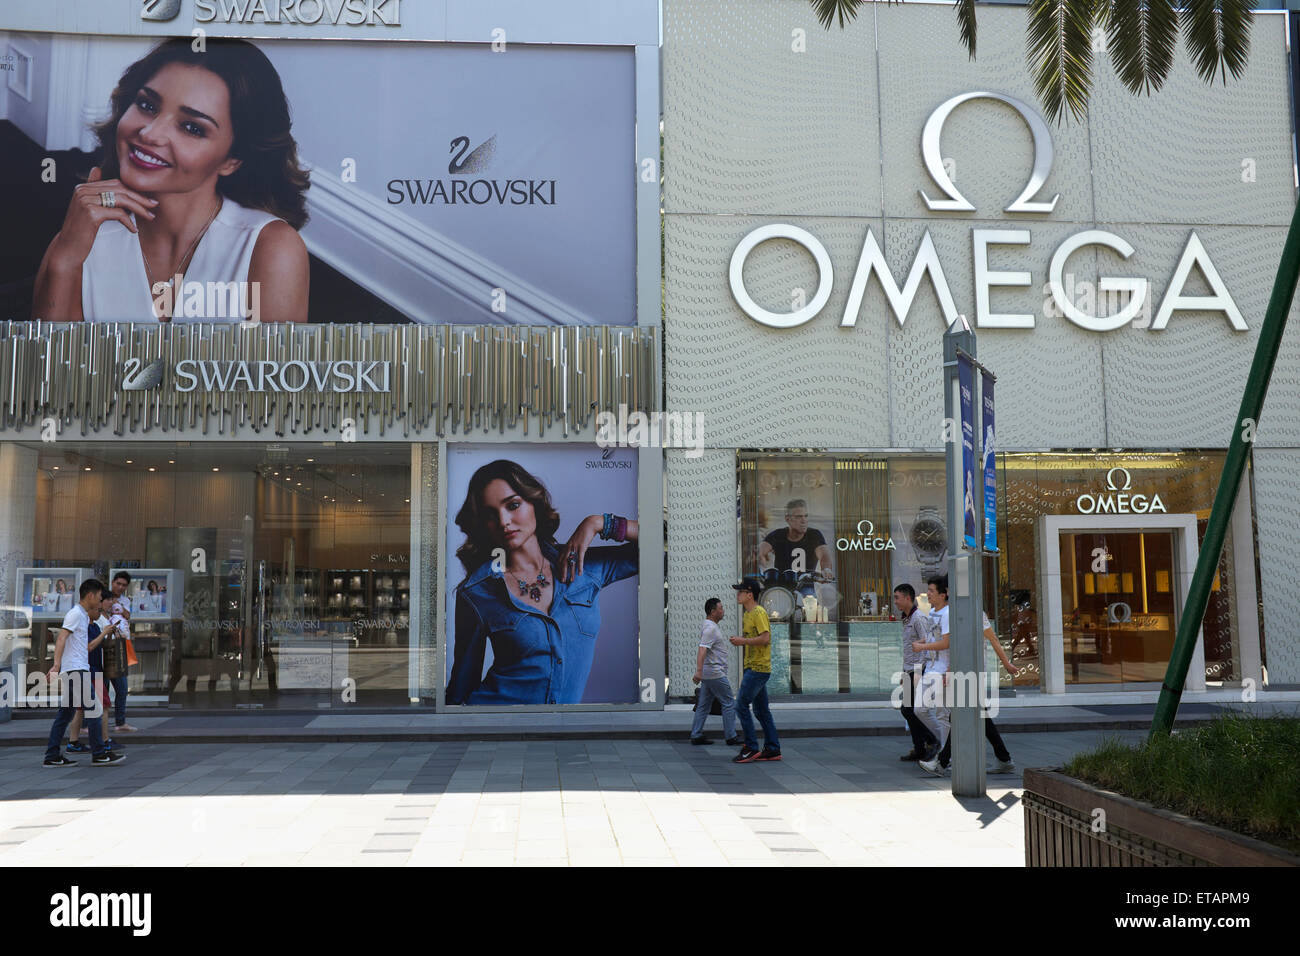 Omega Swarovski Watches store in Ningbo, Zhejiang province, China. - Stock Image